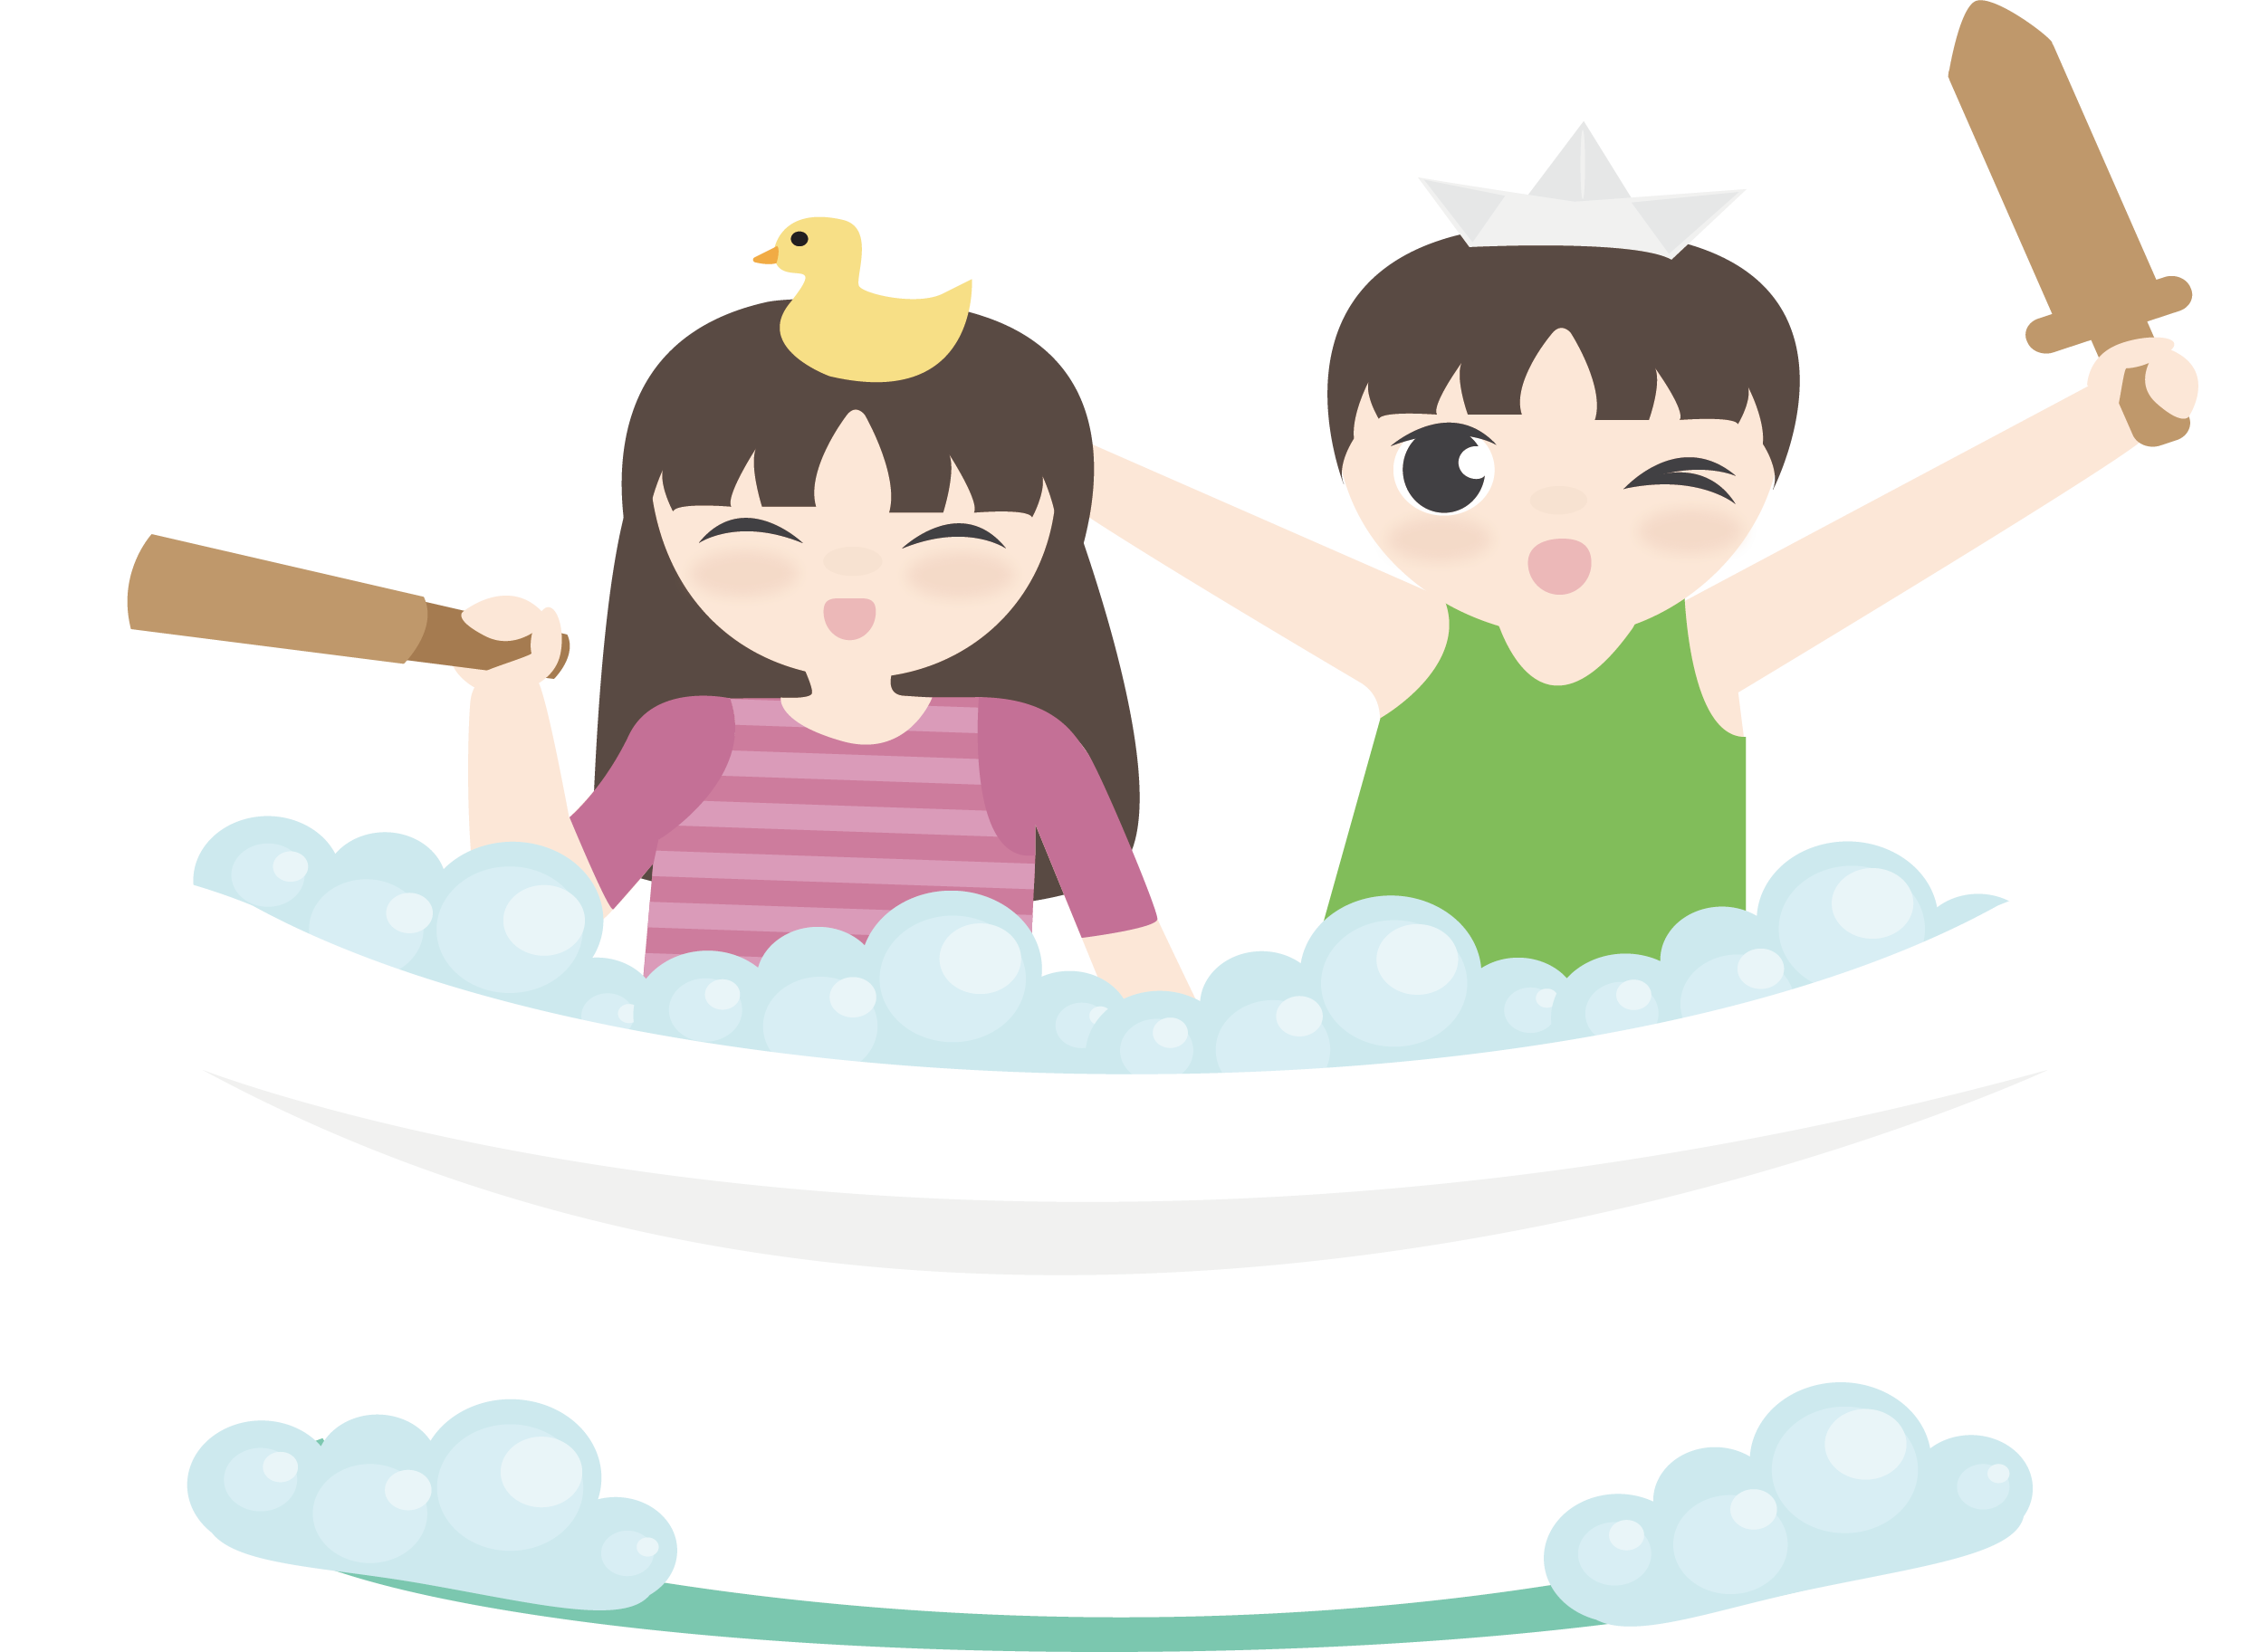 Download Euclidean Vector Illustration - Bubble Bath Vector 2485*1825  Transprent Png Free Download - Art, Organ, Food. - Bubble Bath PNG Free